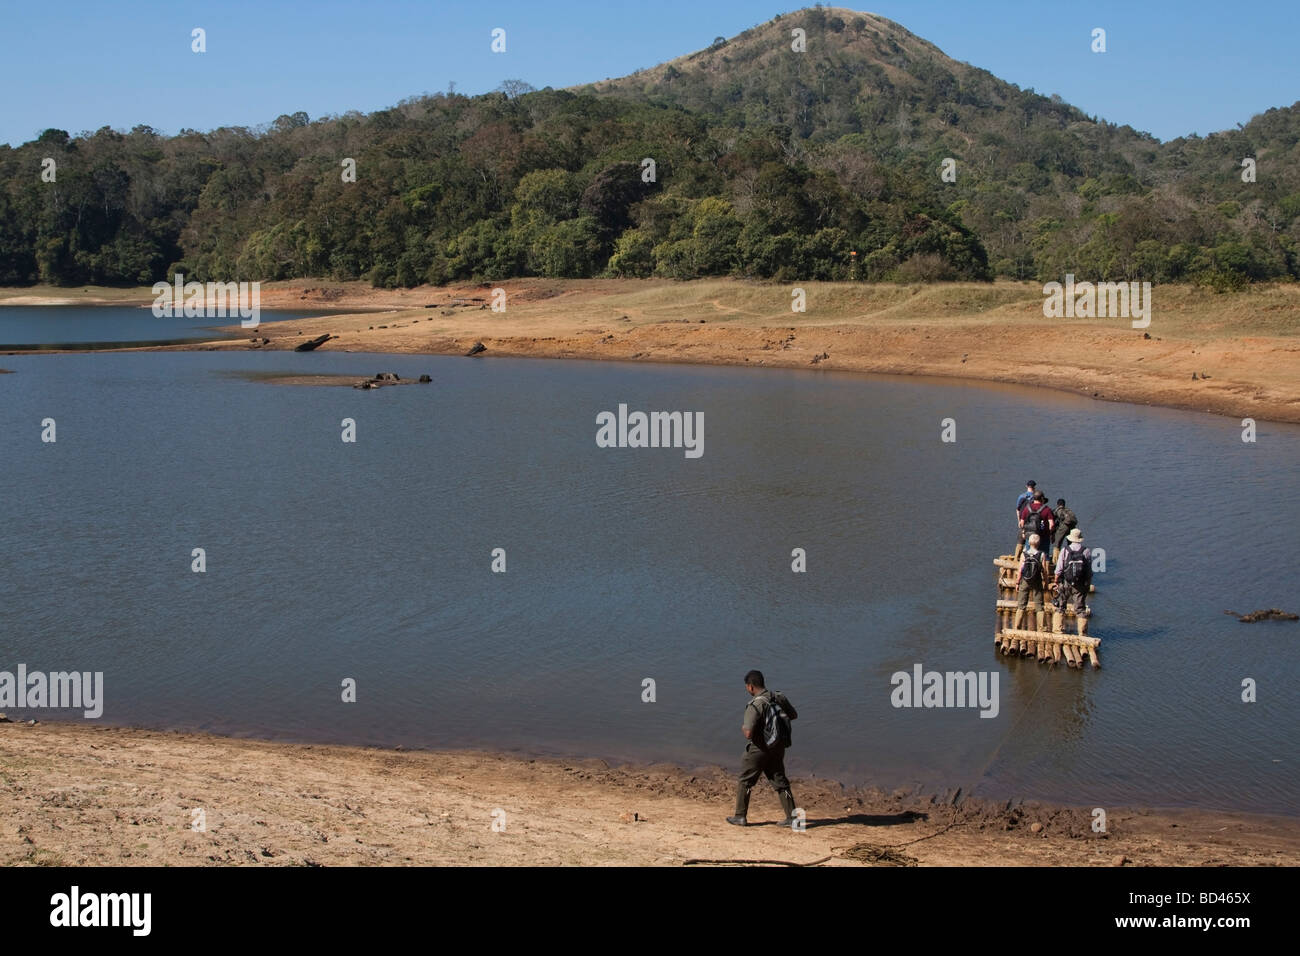 India Kerala Periyar national park tourist guide and eco tourists being ferried on bamboo raft - Stock Image